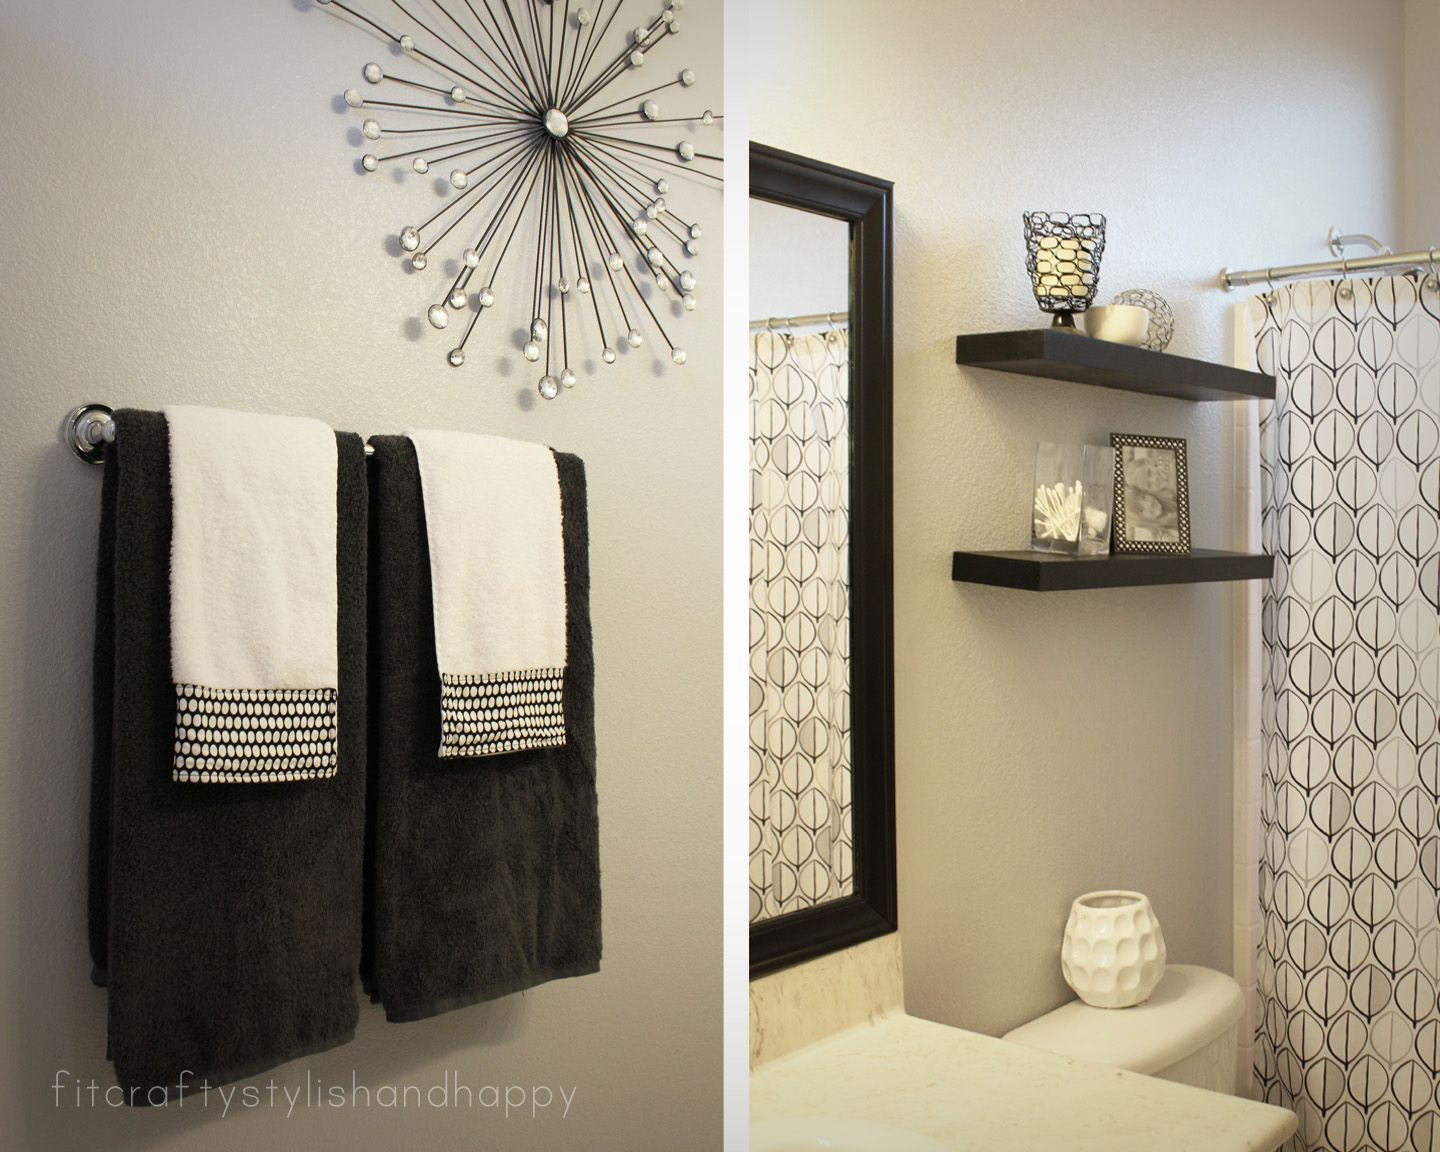 Fit Crafty Stylish and Happy Guest Bathroom Makeover Spare